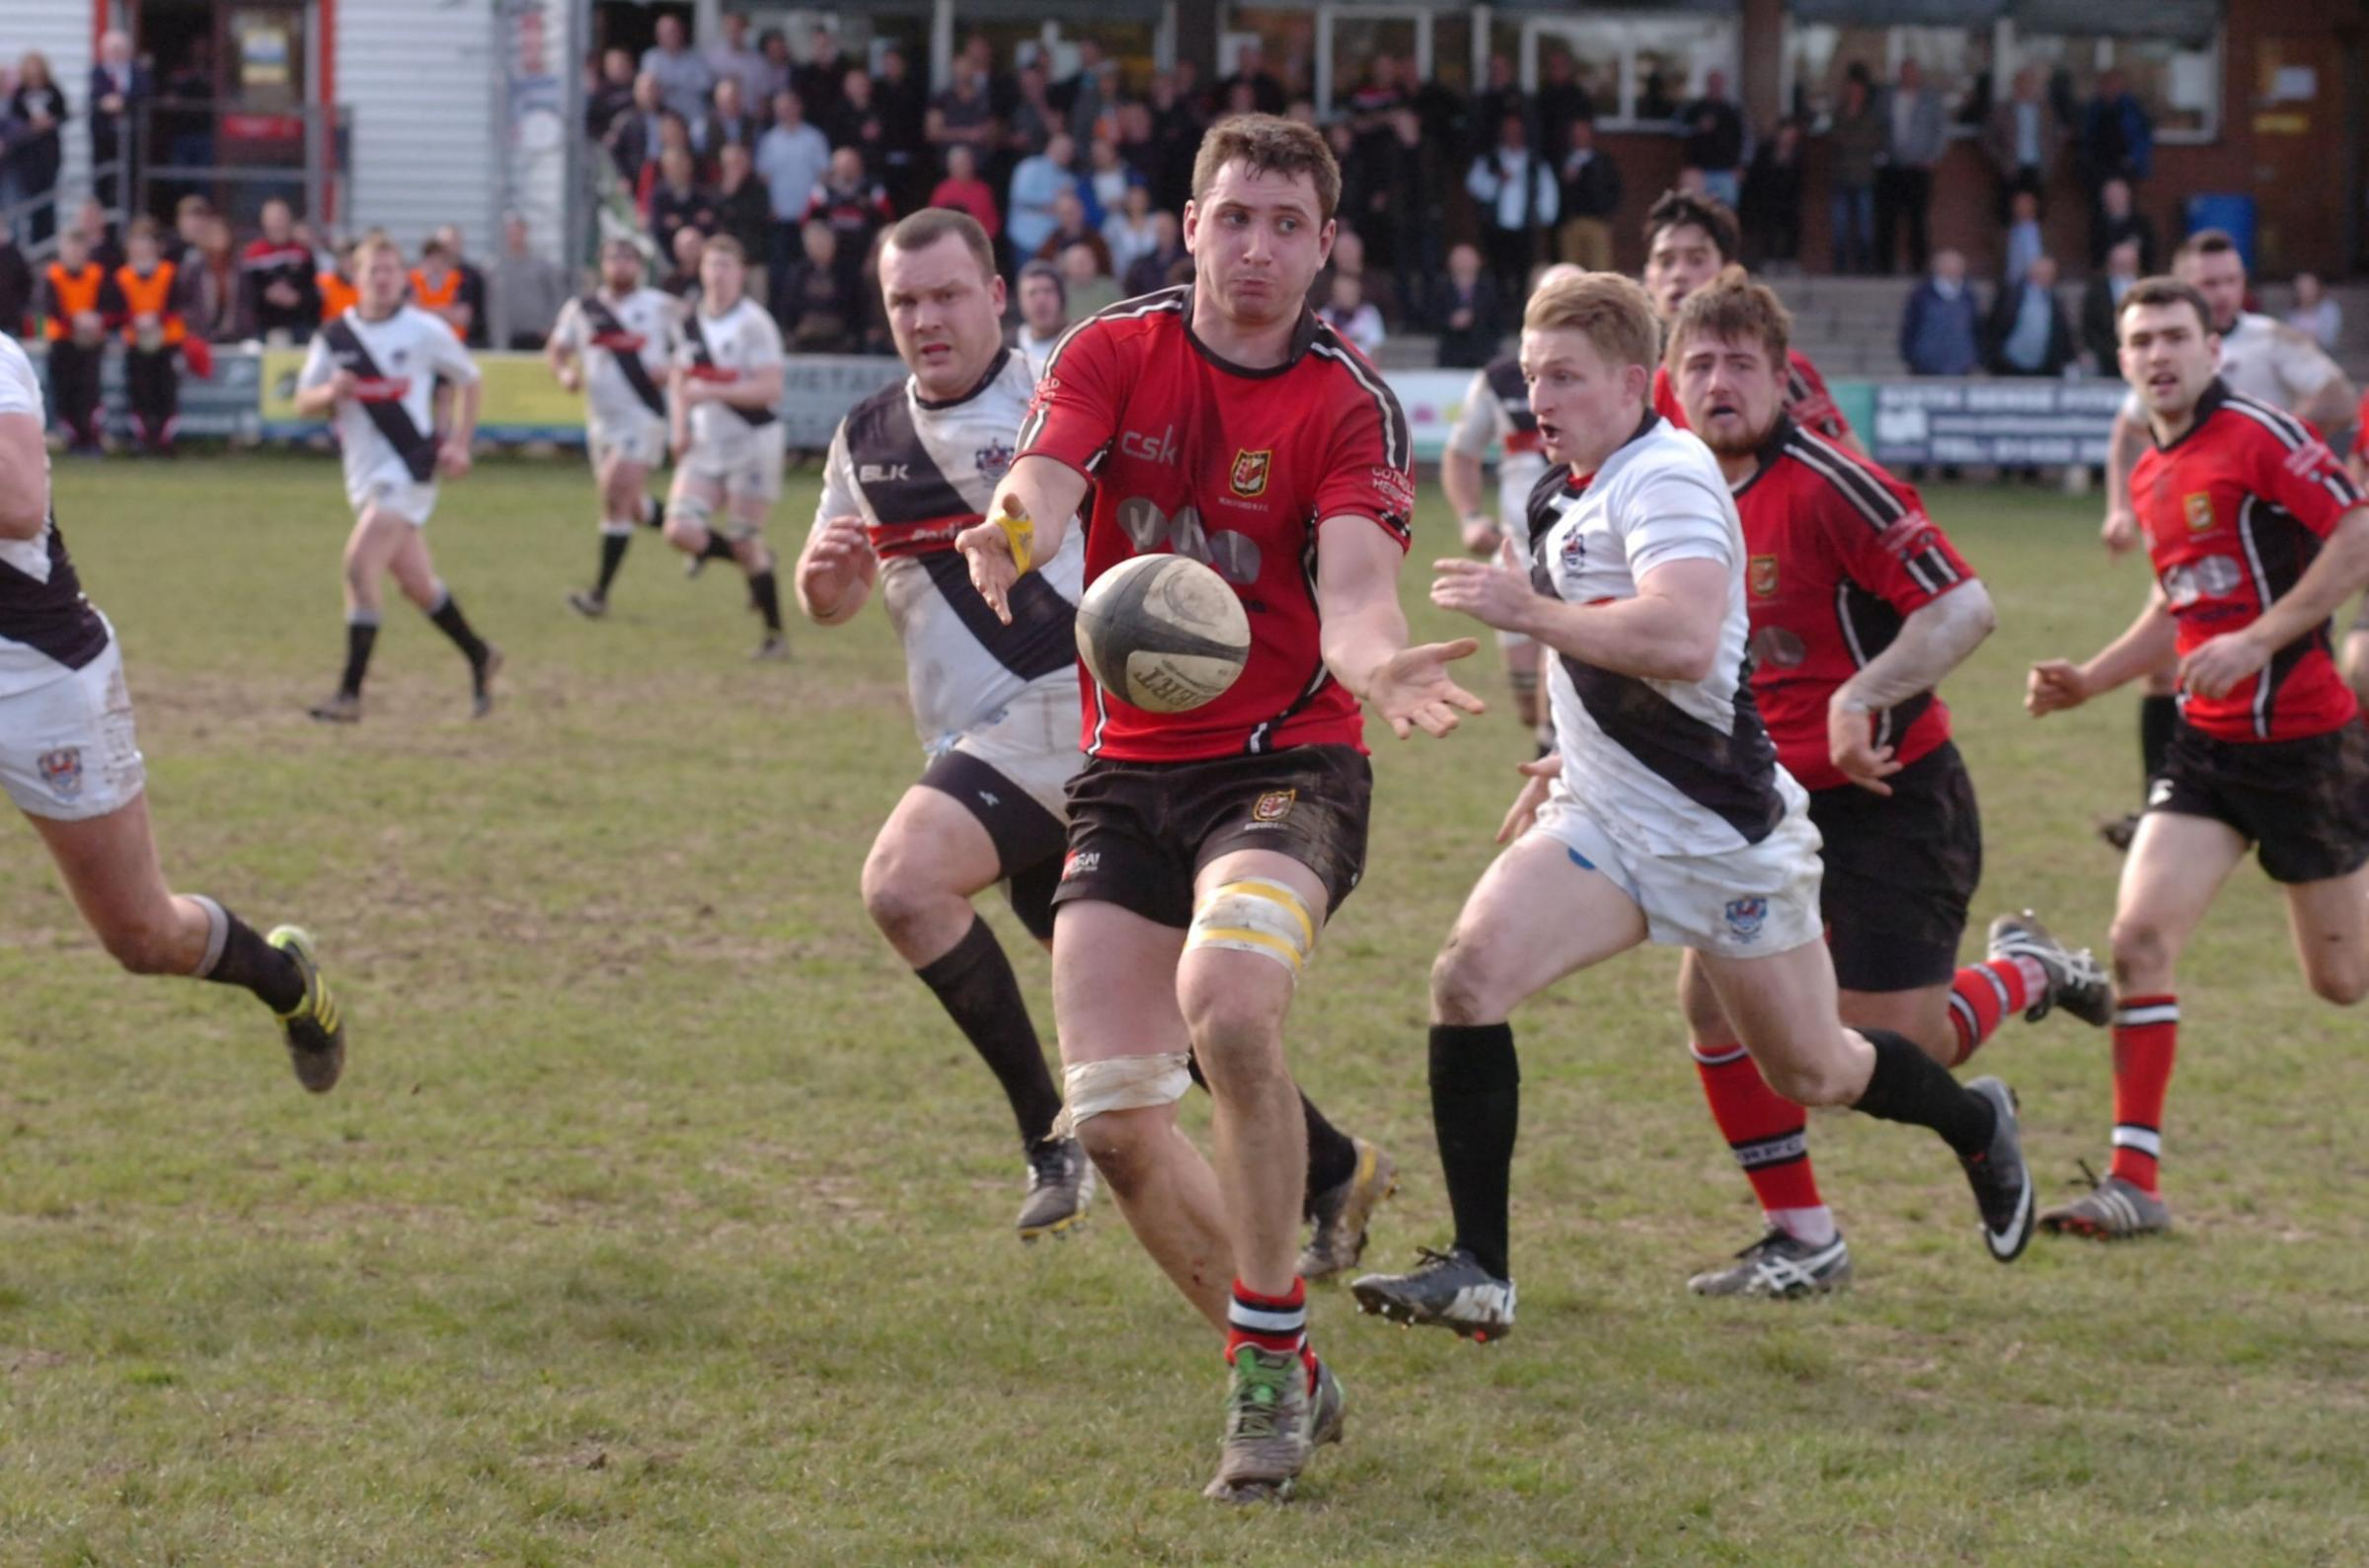 Joy for Hereford Rugby Club's Guy Griffiths